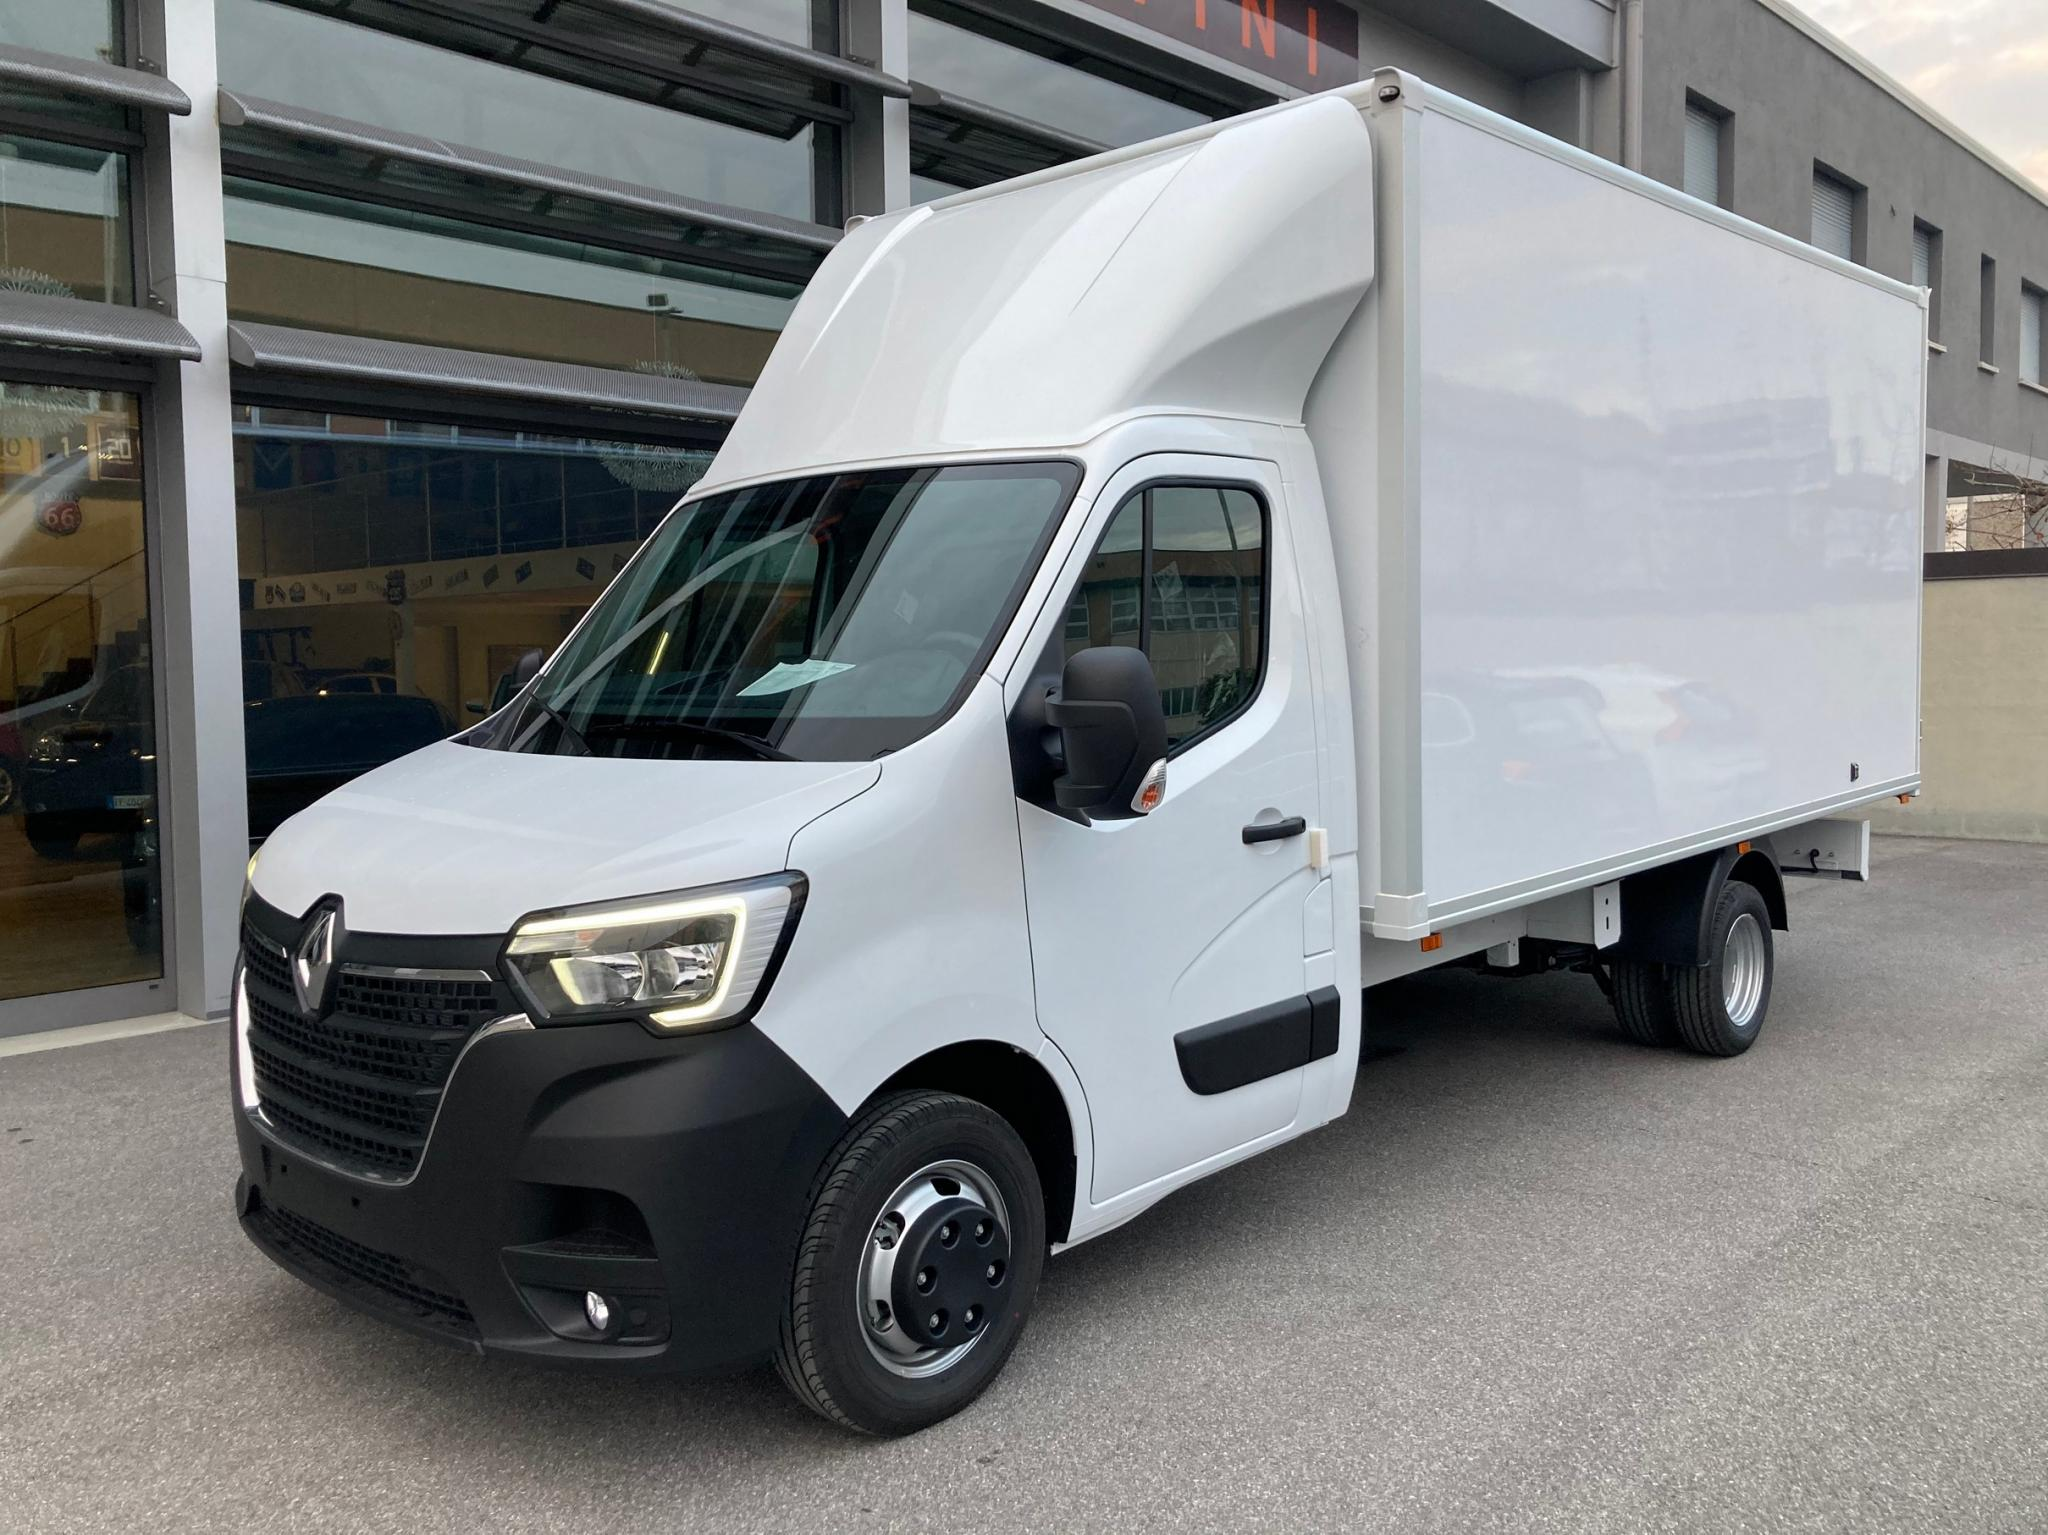 Renault Master GV 20 TA L3 T35 ENERGY DCI 145 ICE N1 AUTOCARRO